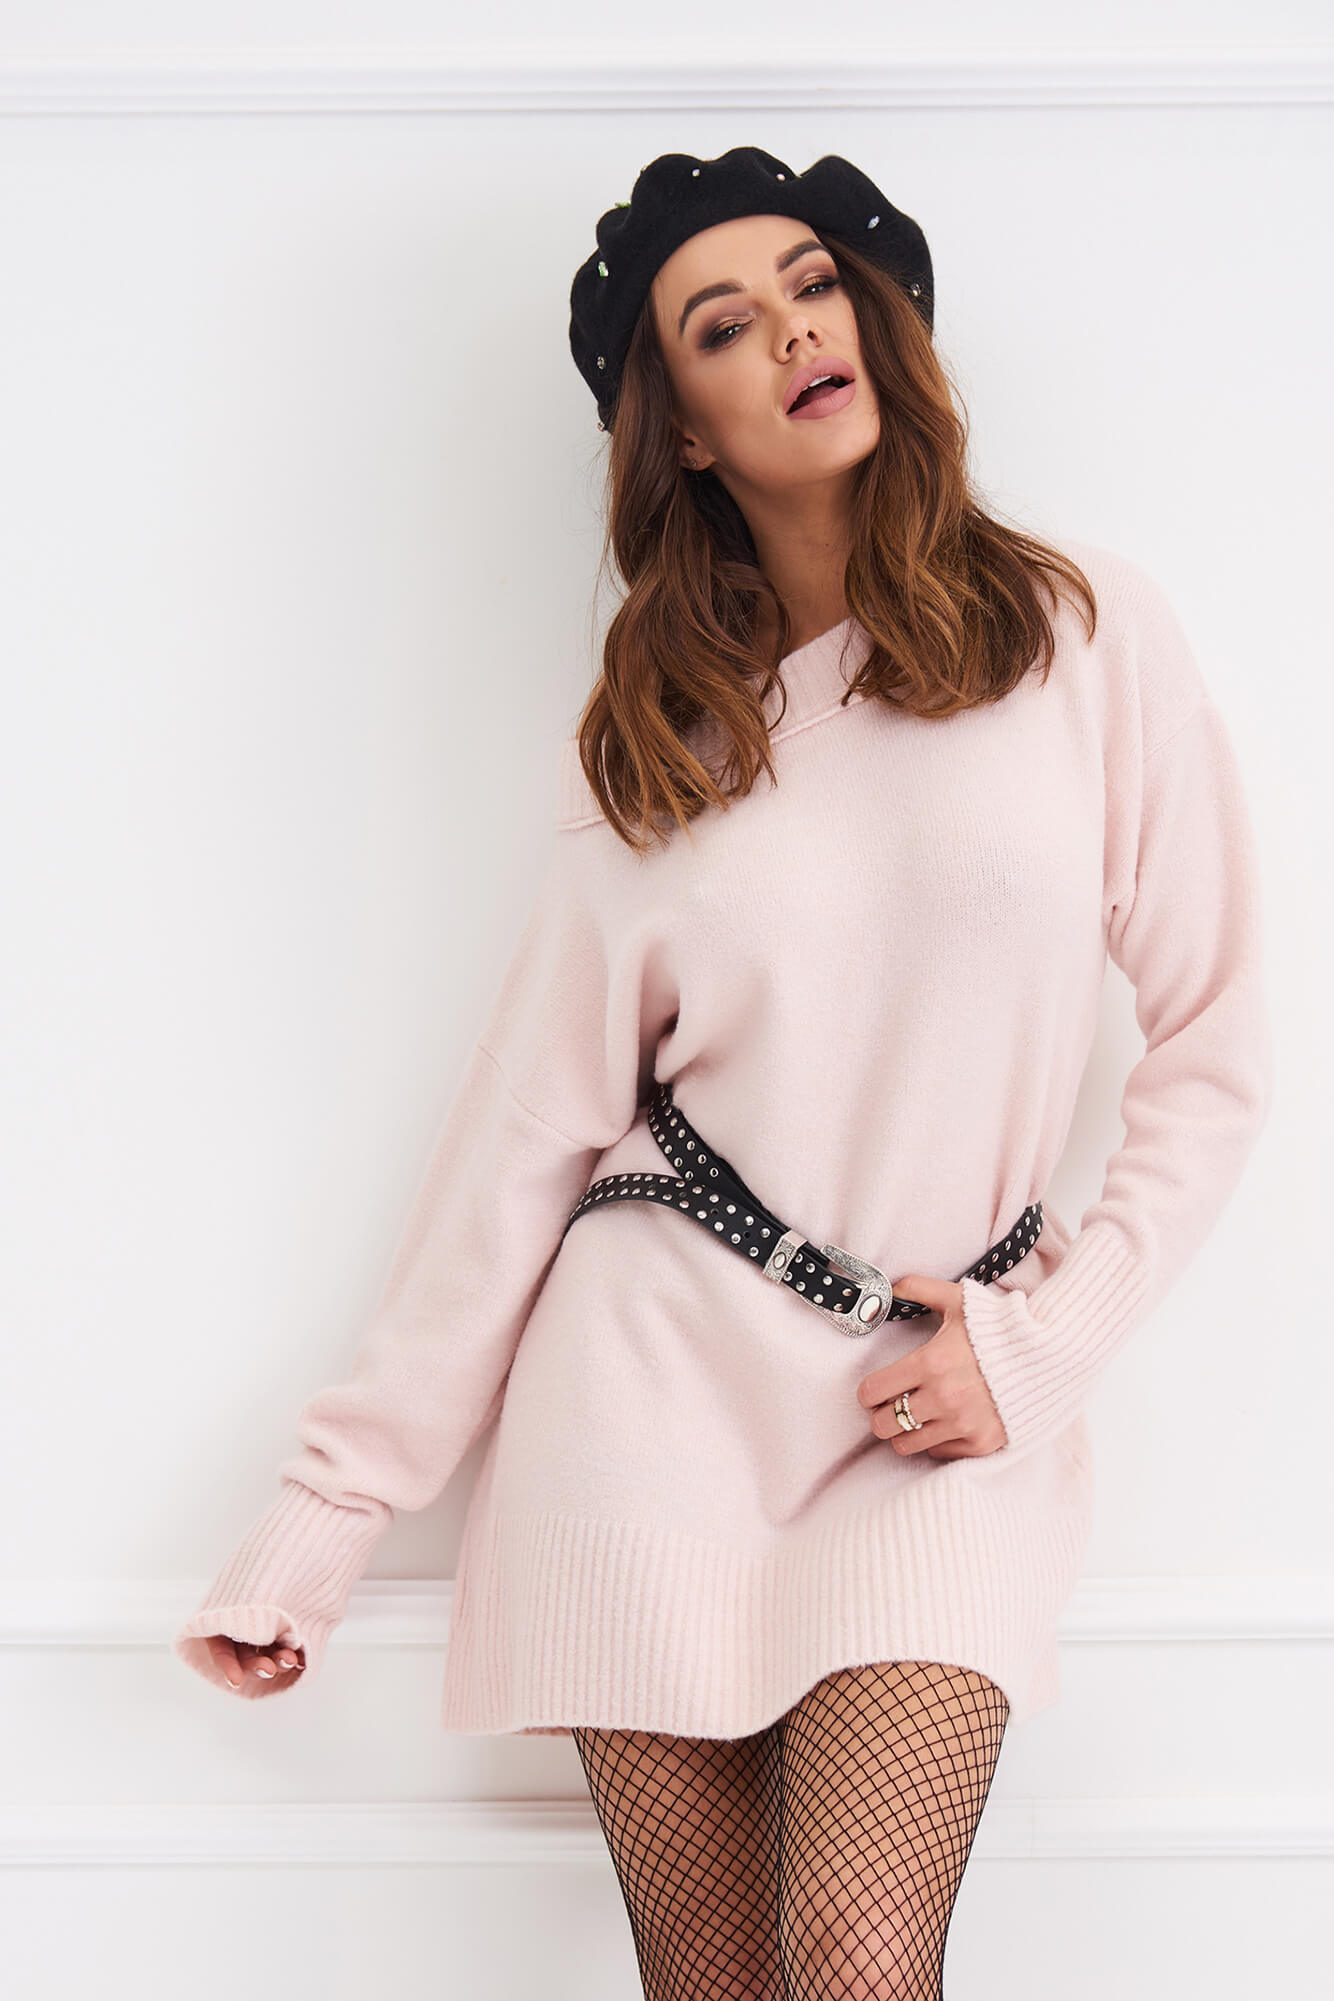 bc664784e52 Click to enlarge. HomeShopDresses Long Sleeved Knit Jumper Dress Powder  Pink One size